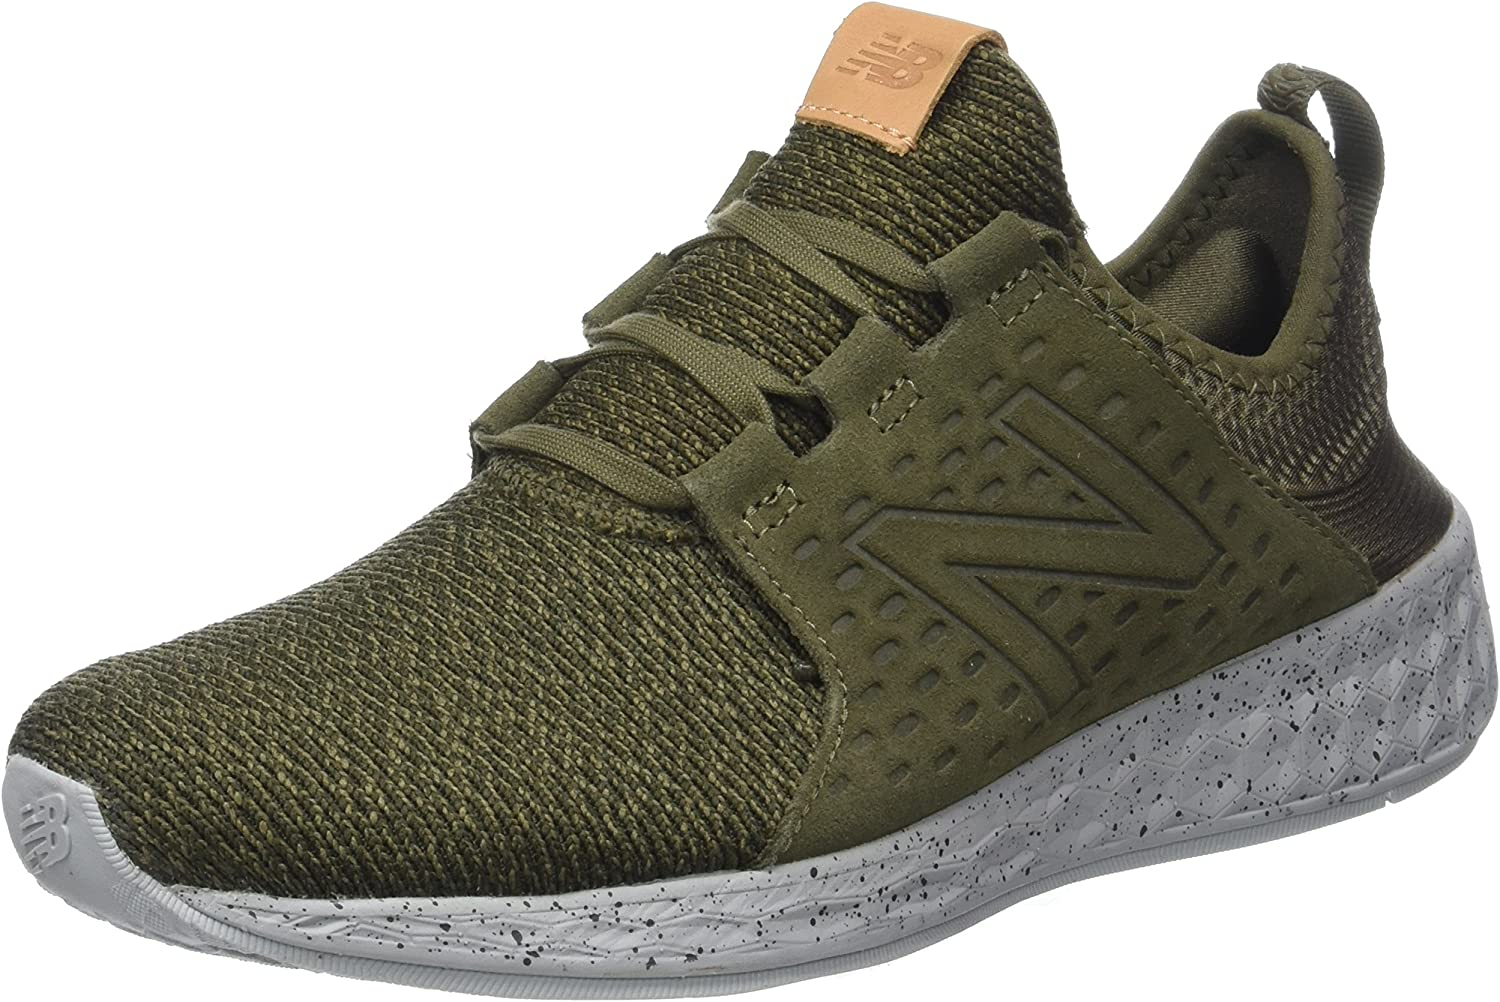 new balance olive green shoes - 54% OFF